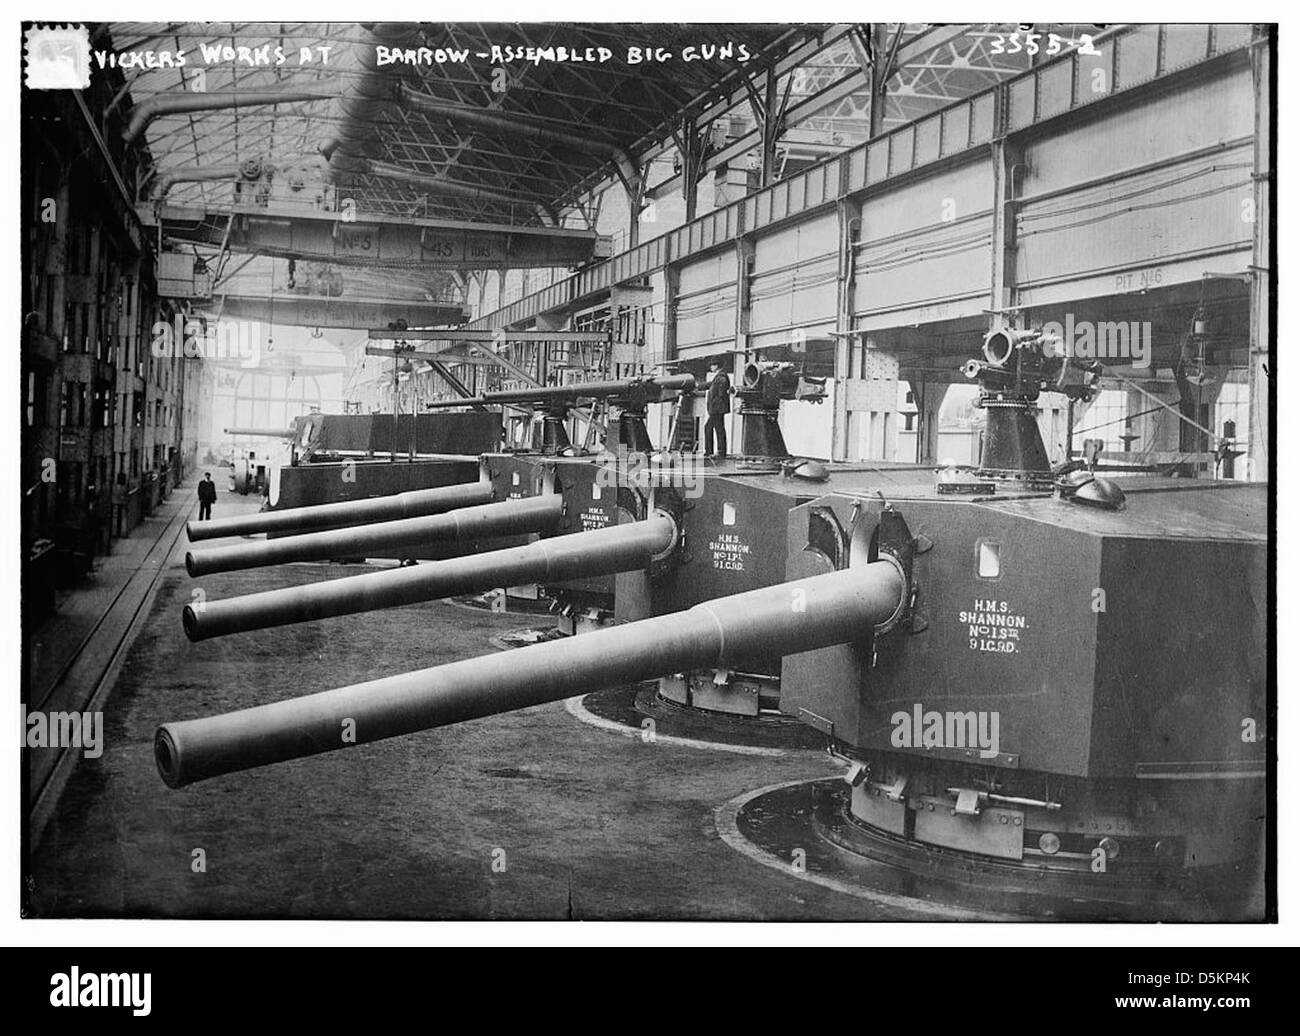 Vickers Works by Barrow -- Assembled big guns (LOC) - Stock Image